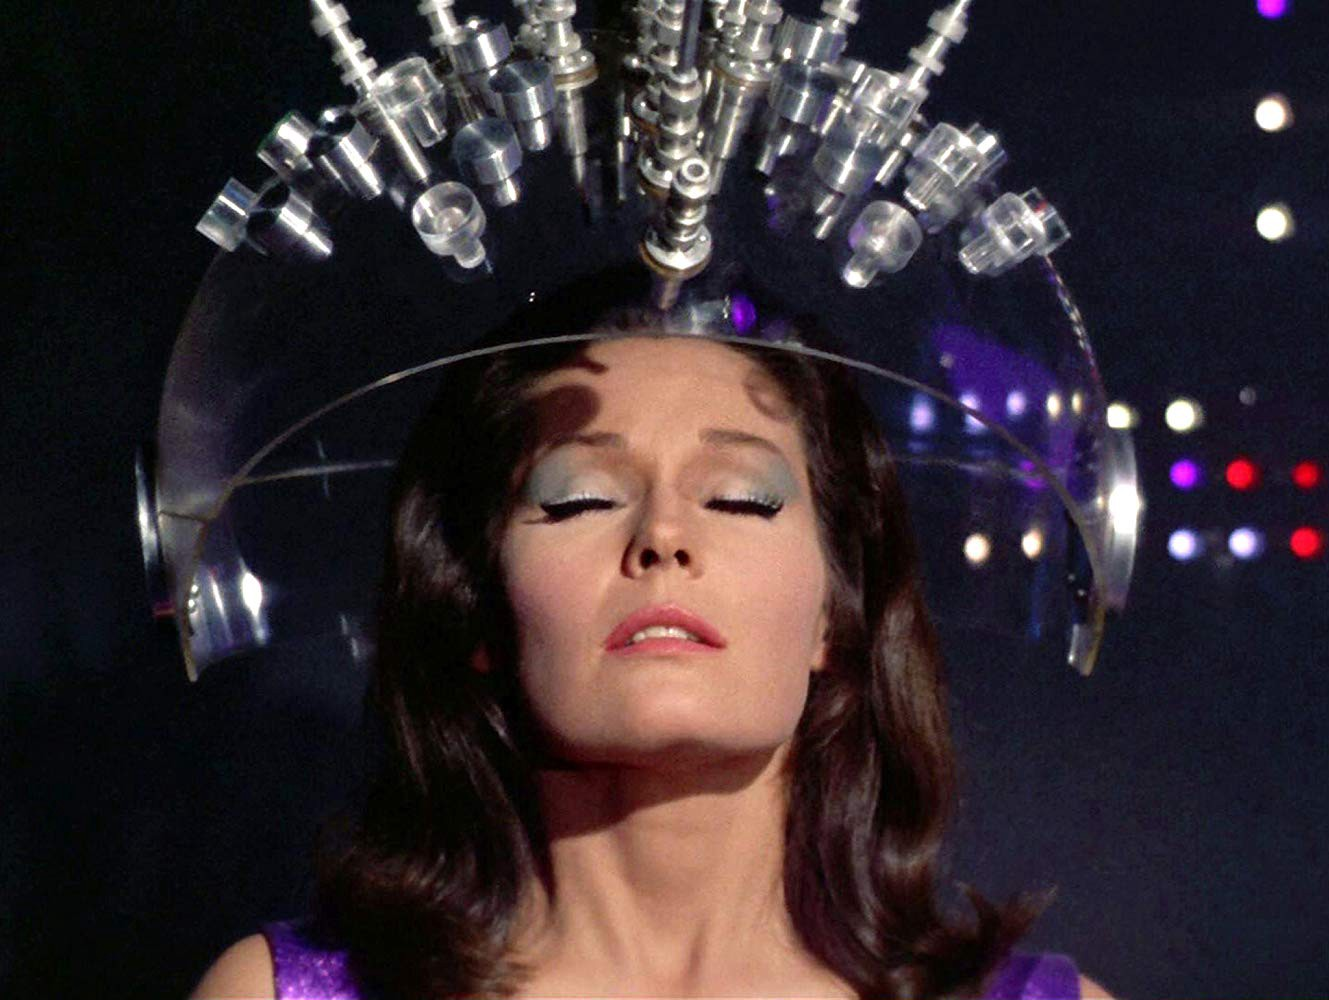 """A still from """"Spock's Brain,"""" an episode of Star Trek. The image contains a woman wearing a futuristic helmet."""